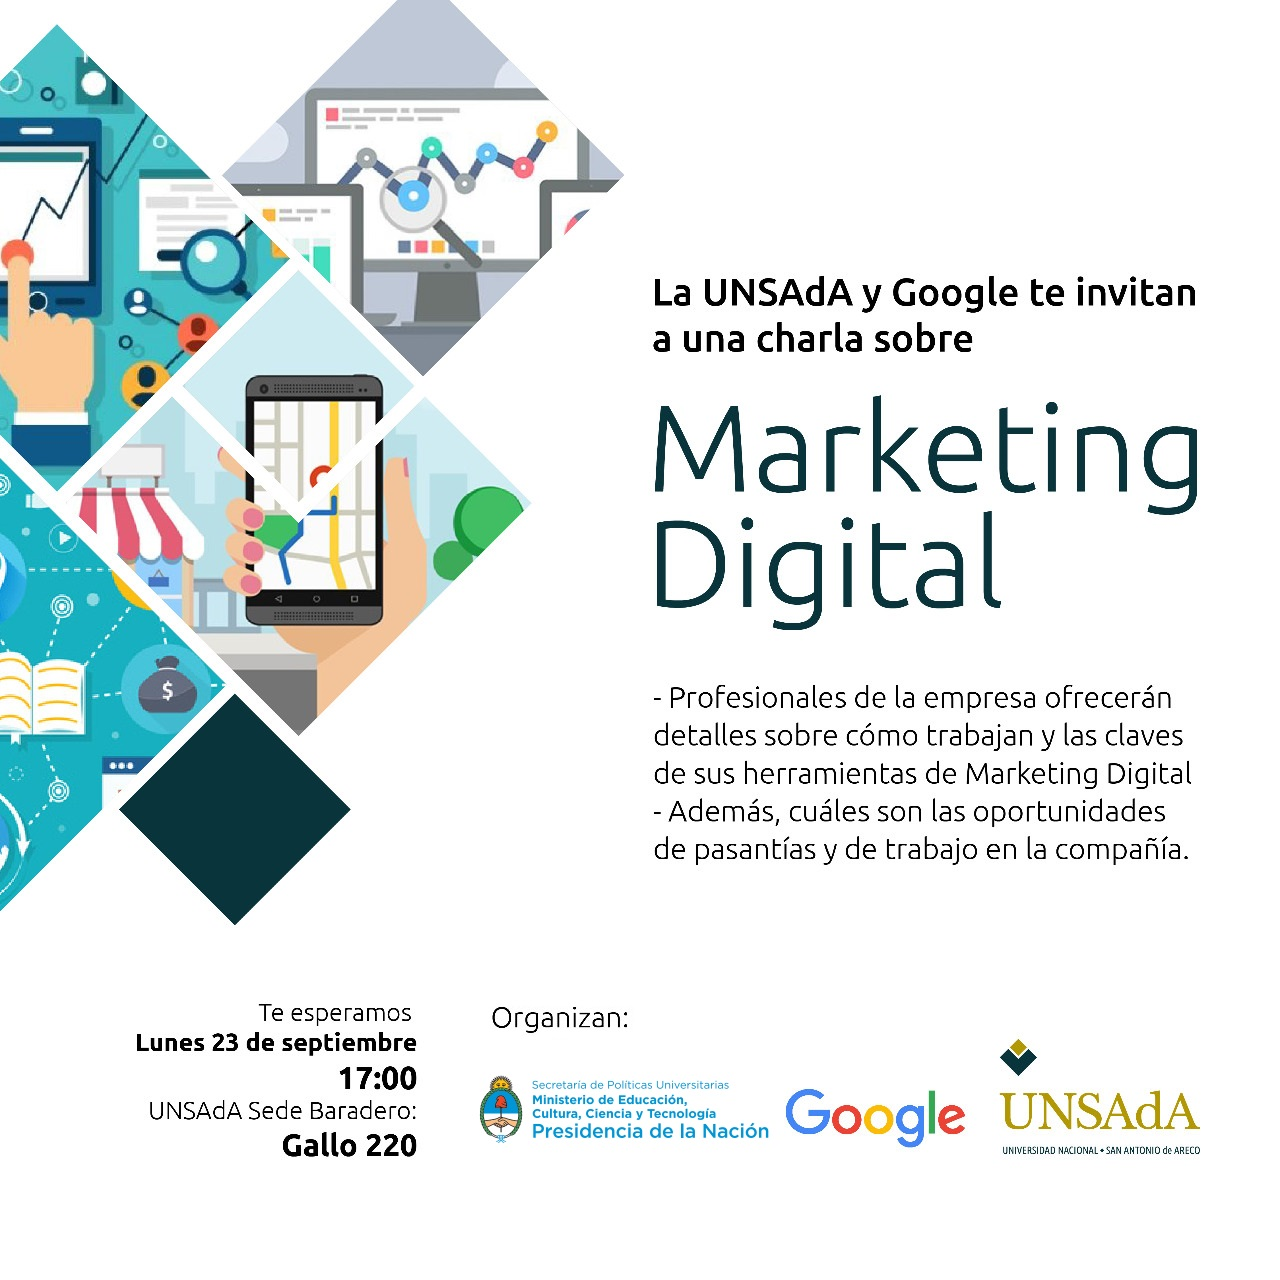 Mkt Digital Unsada Google